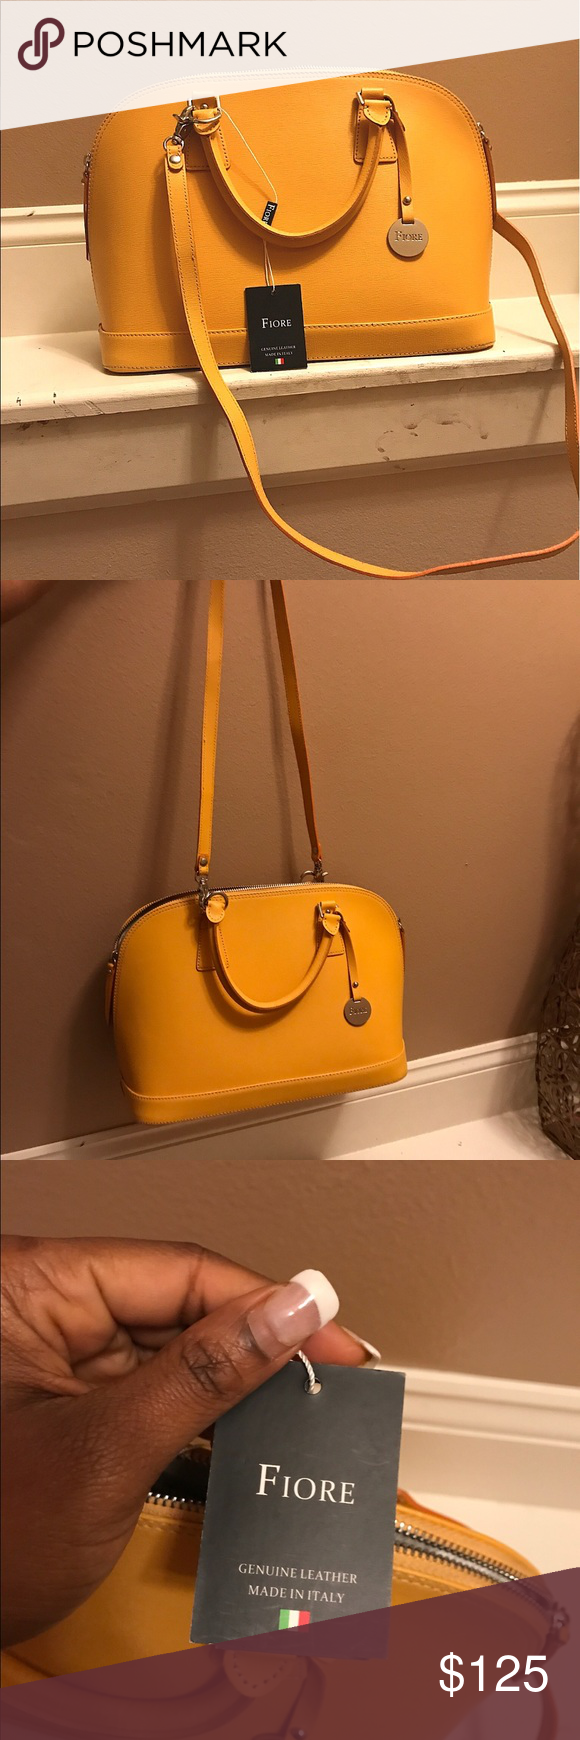 Fiore Handbag Lovely Genuine Leather Mustard Yellow Colored With Silver Zipper Hardware